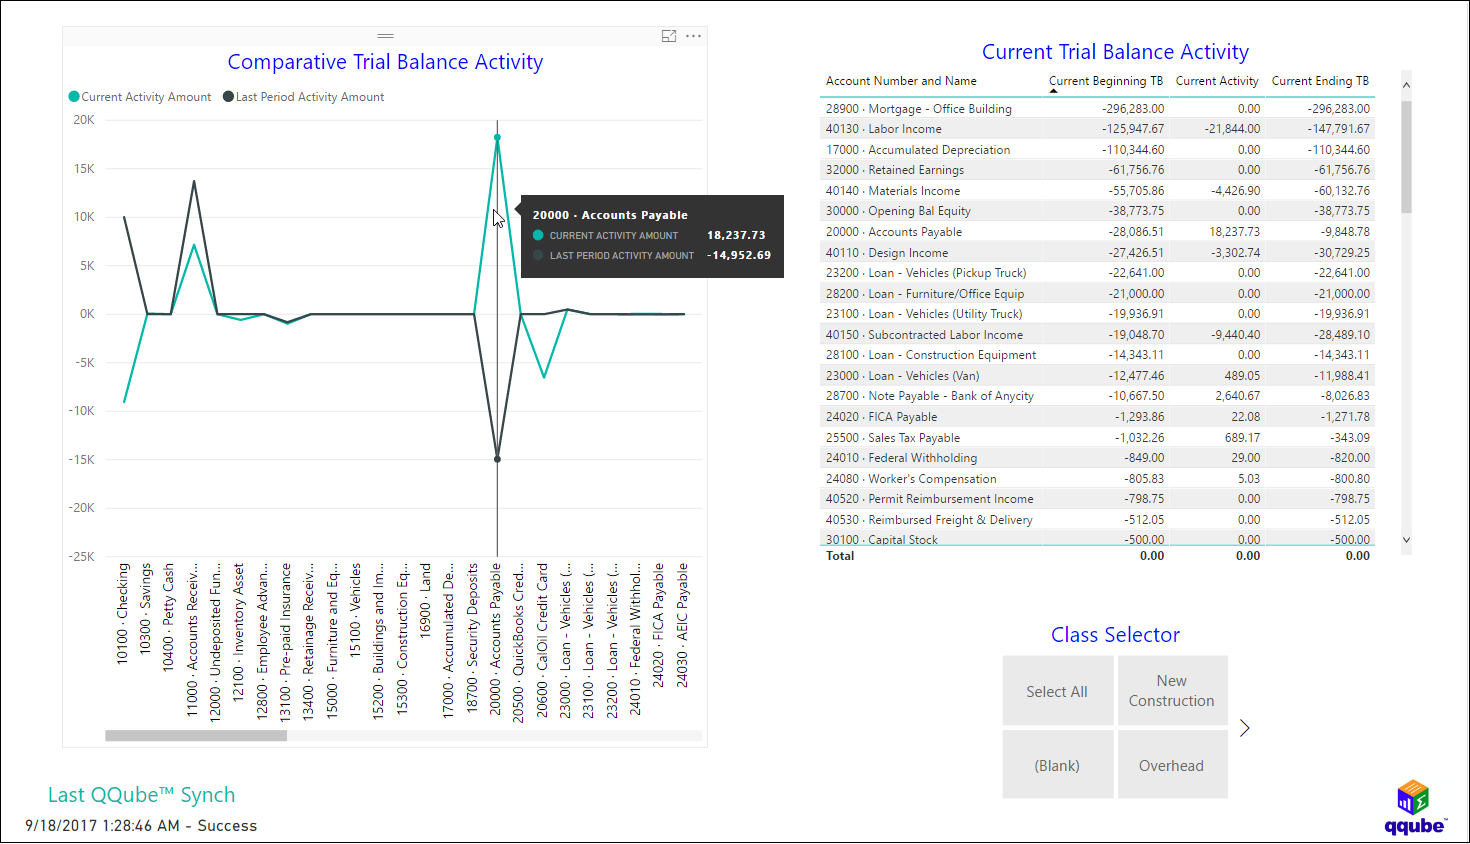 QQube and Power BI - Trial Balance Activity by Class